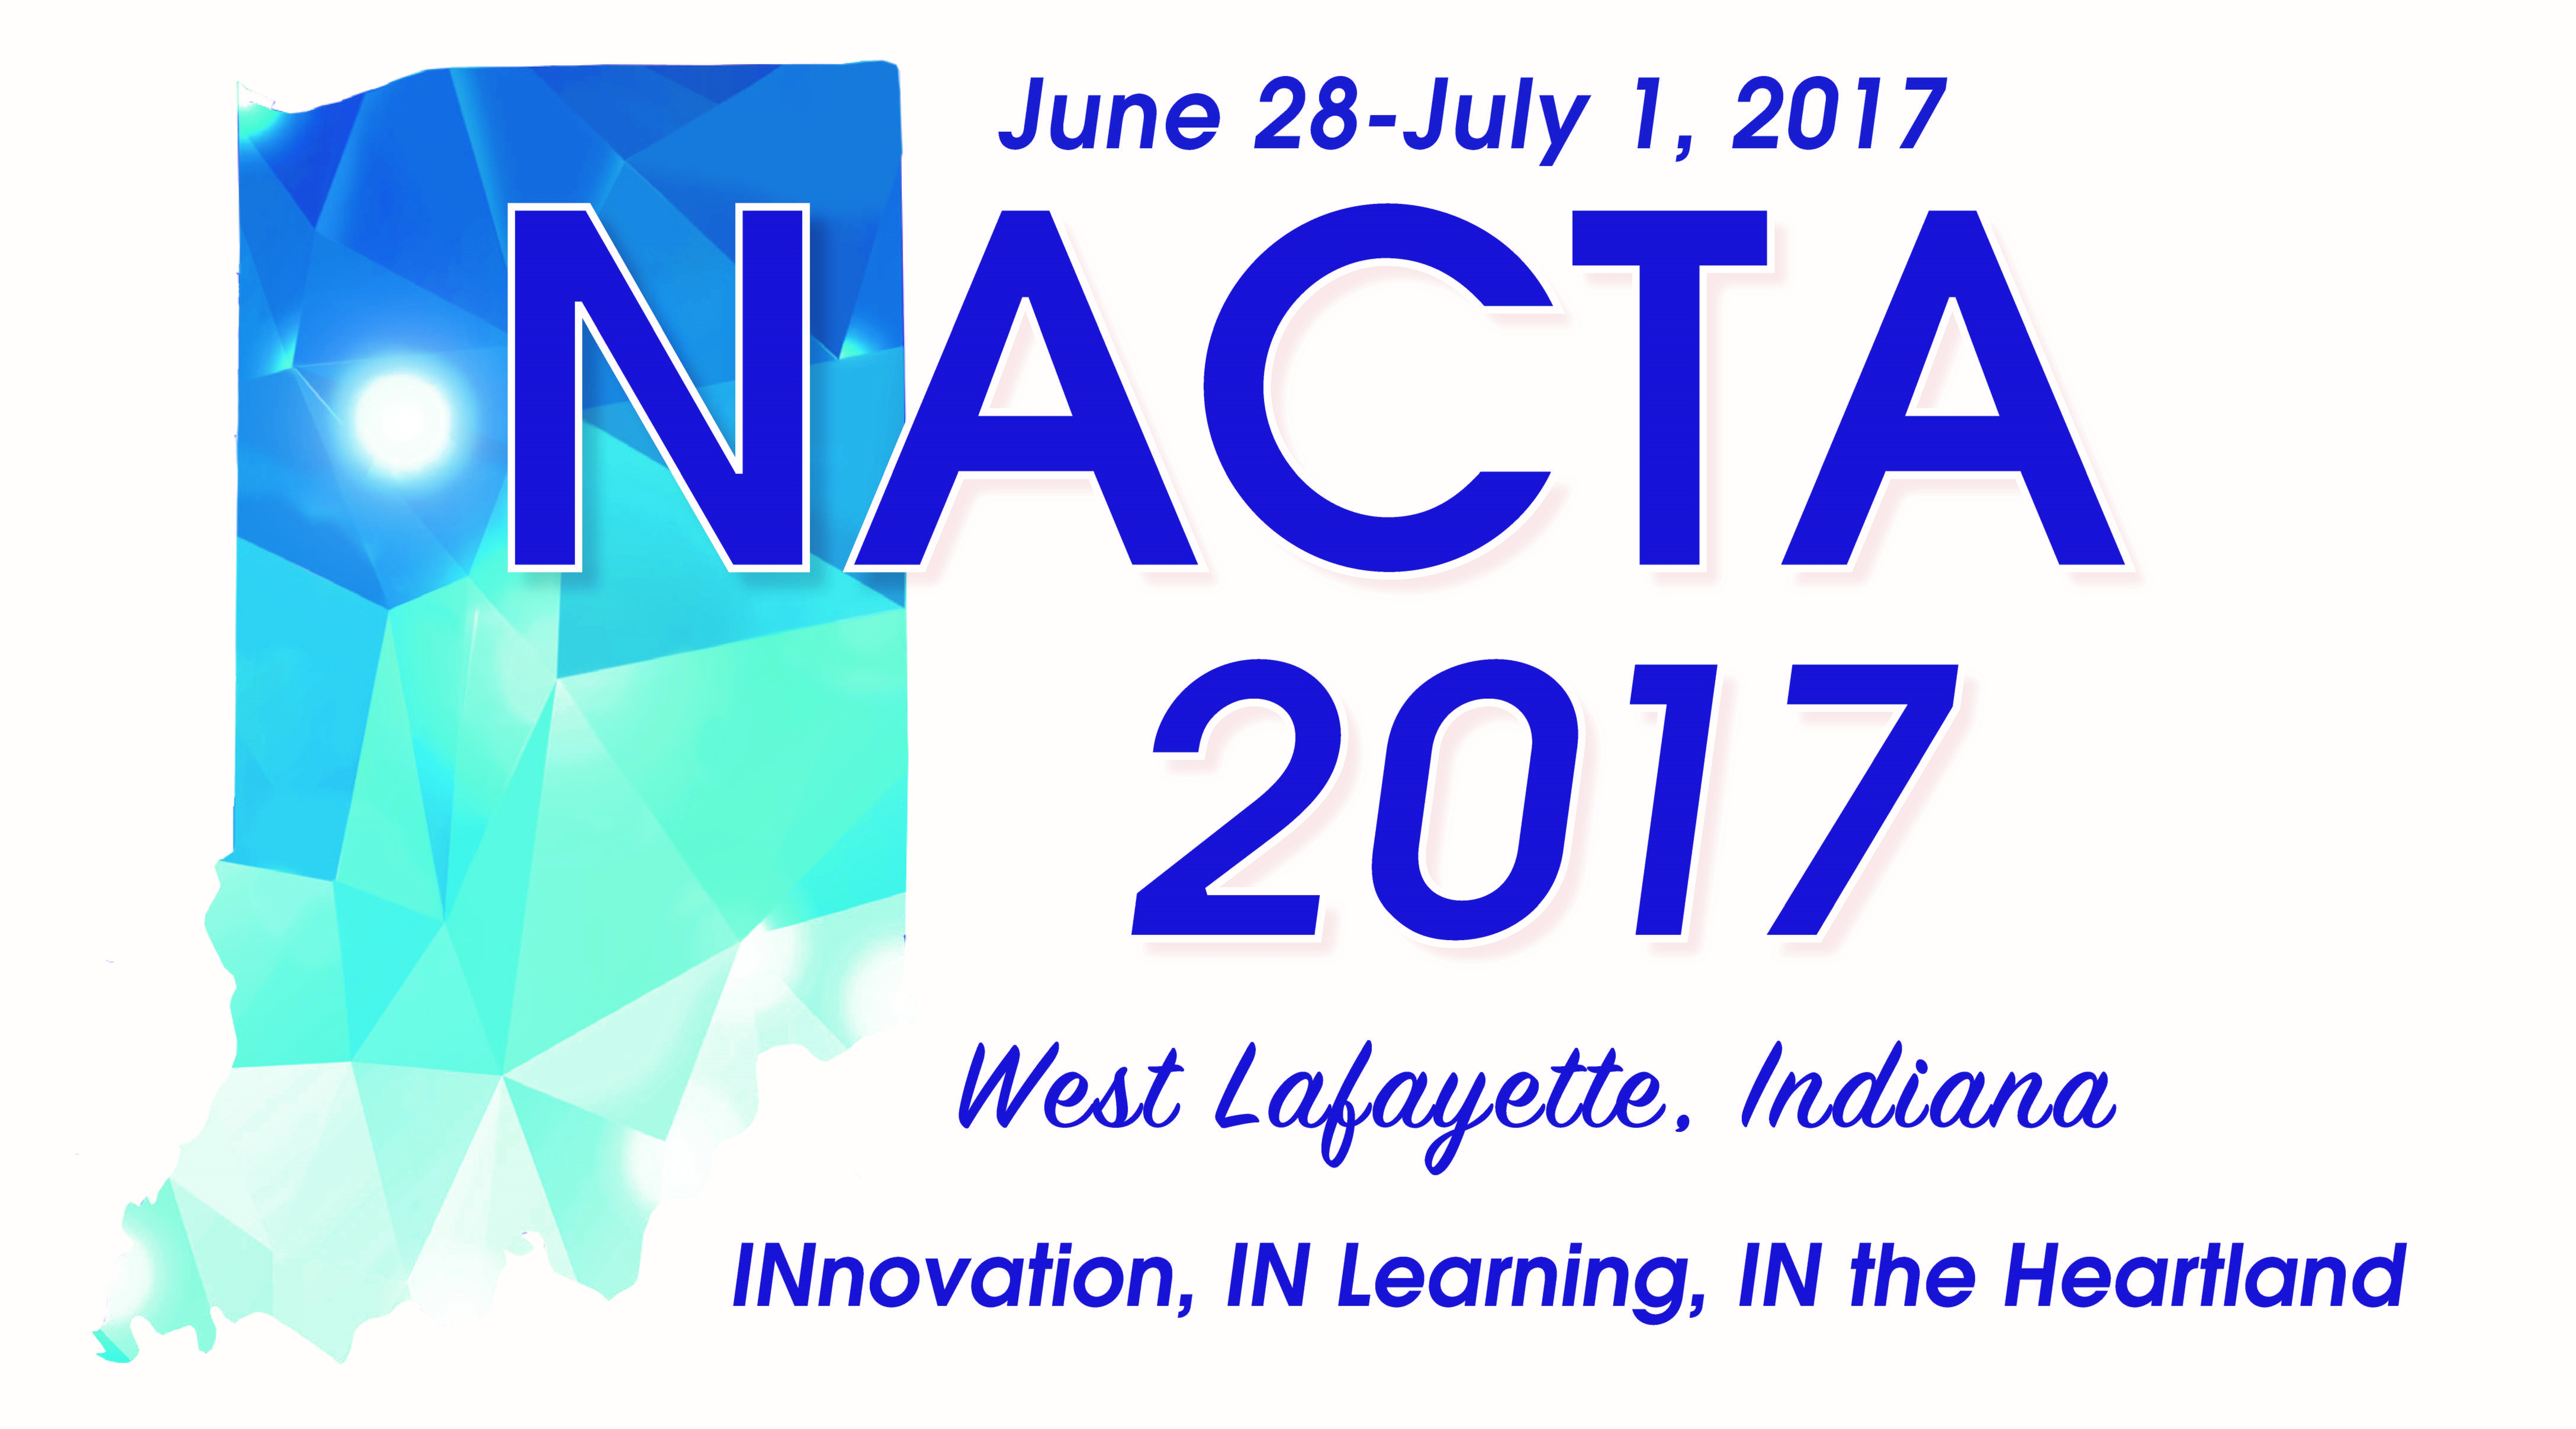 NACTA 2017 Finals Dates 002 Page 1